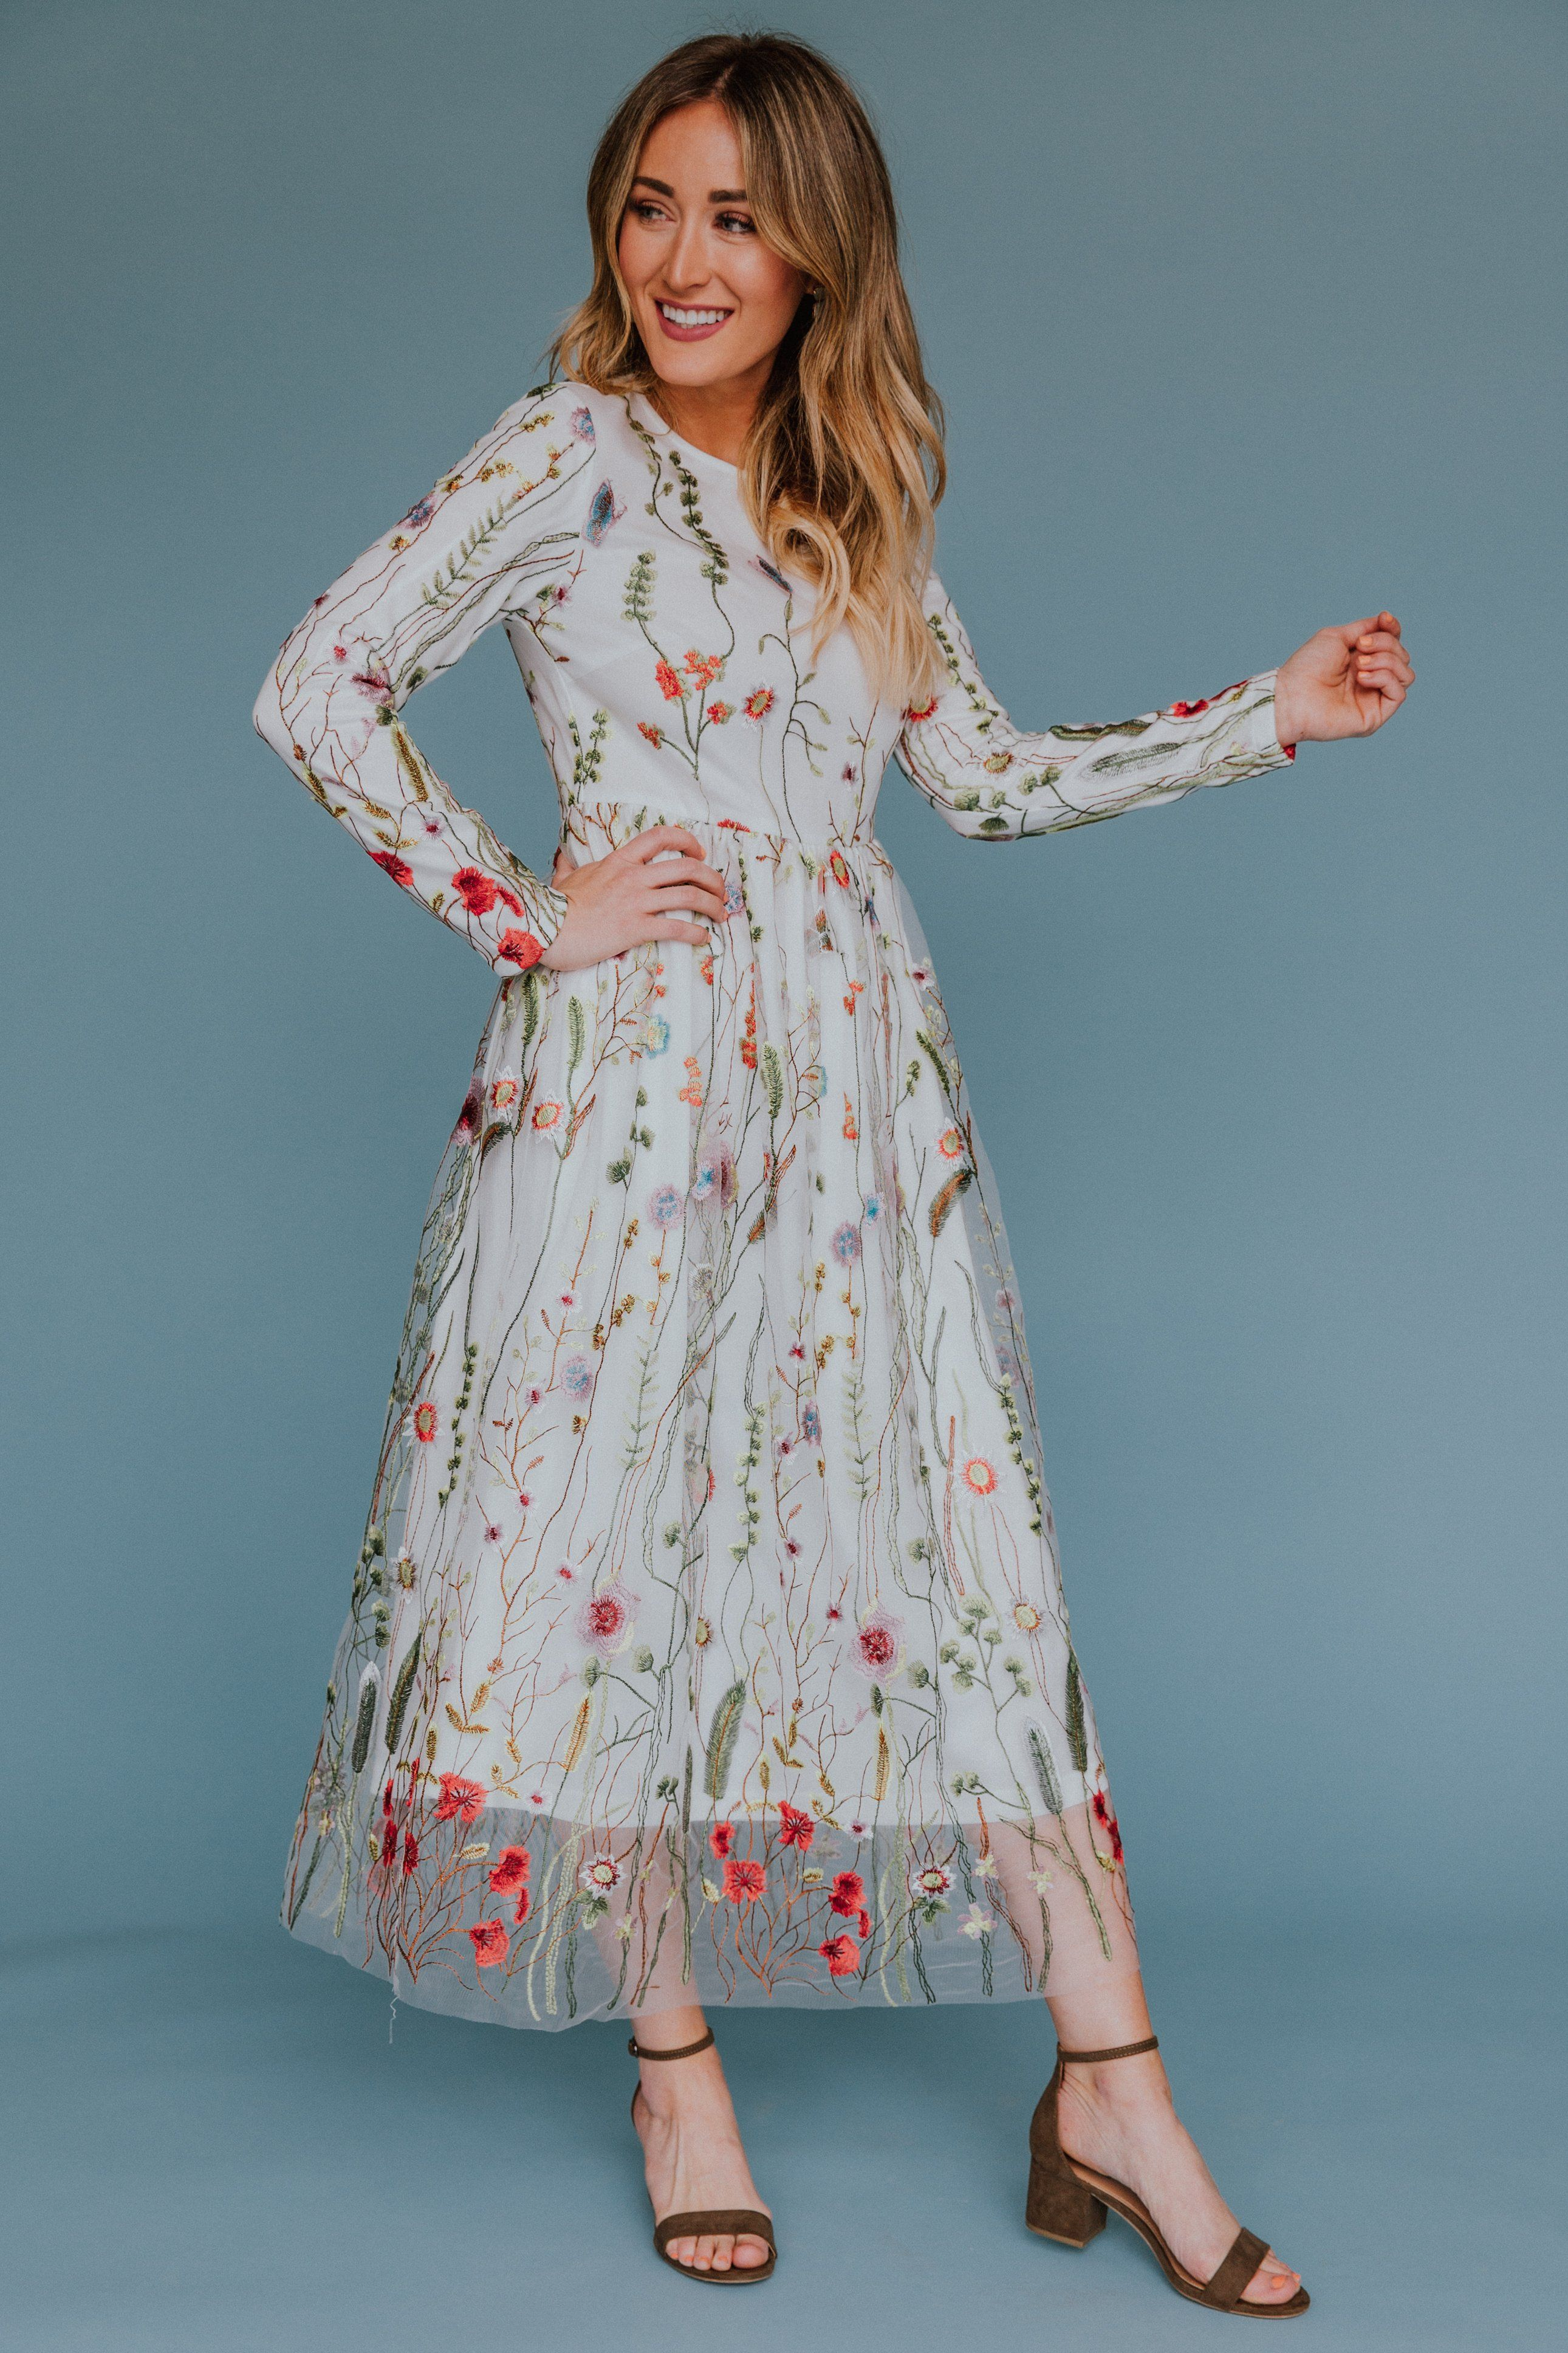 The Garden Party Dress Ivy City Co Party Dress Garden Party Dress Dresses [ 3872 x 2581 Pixel ]